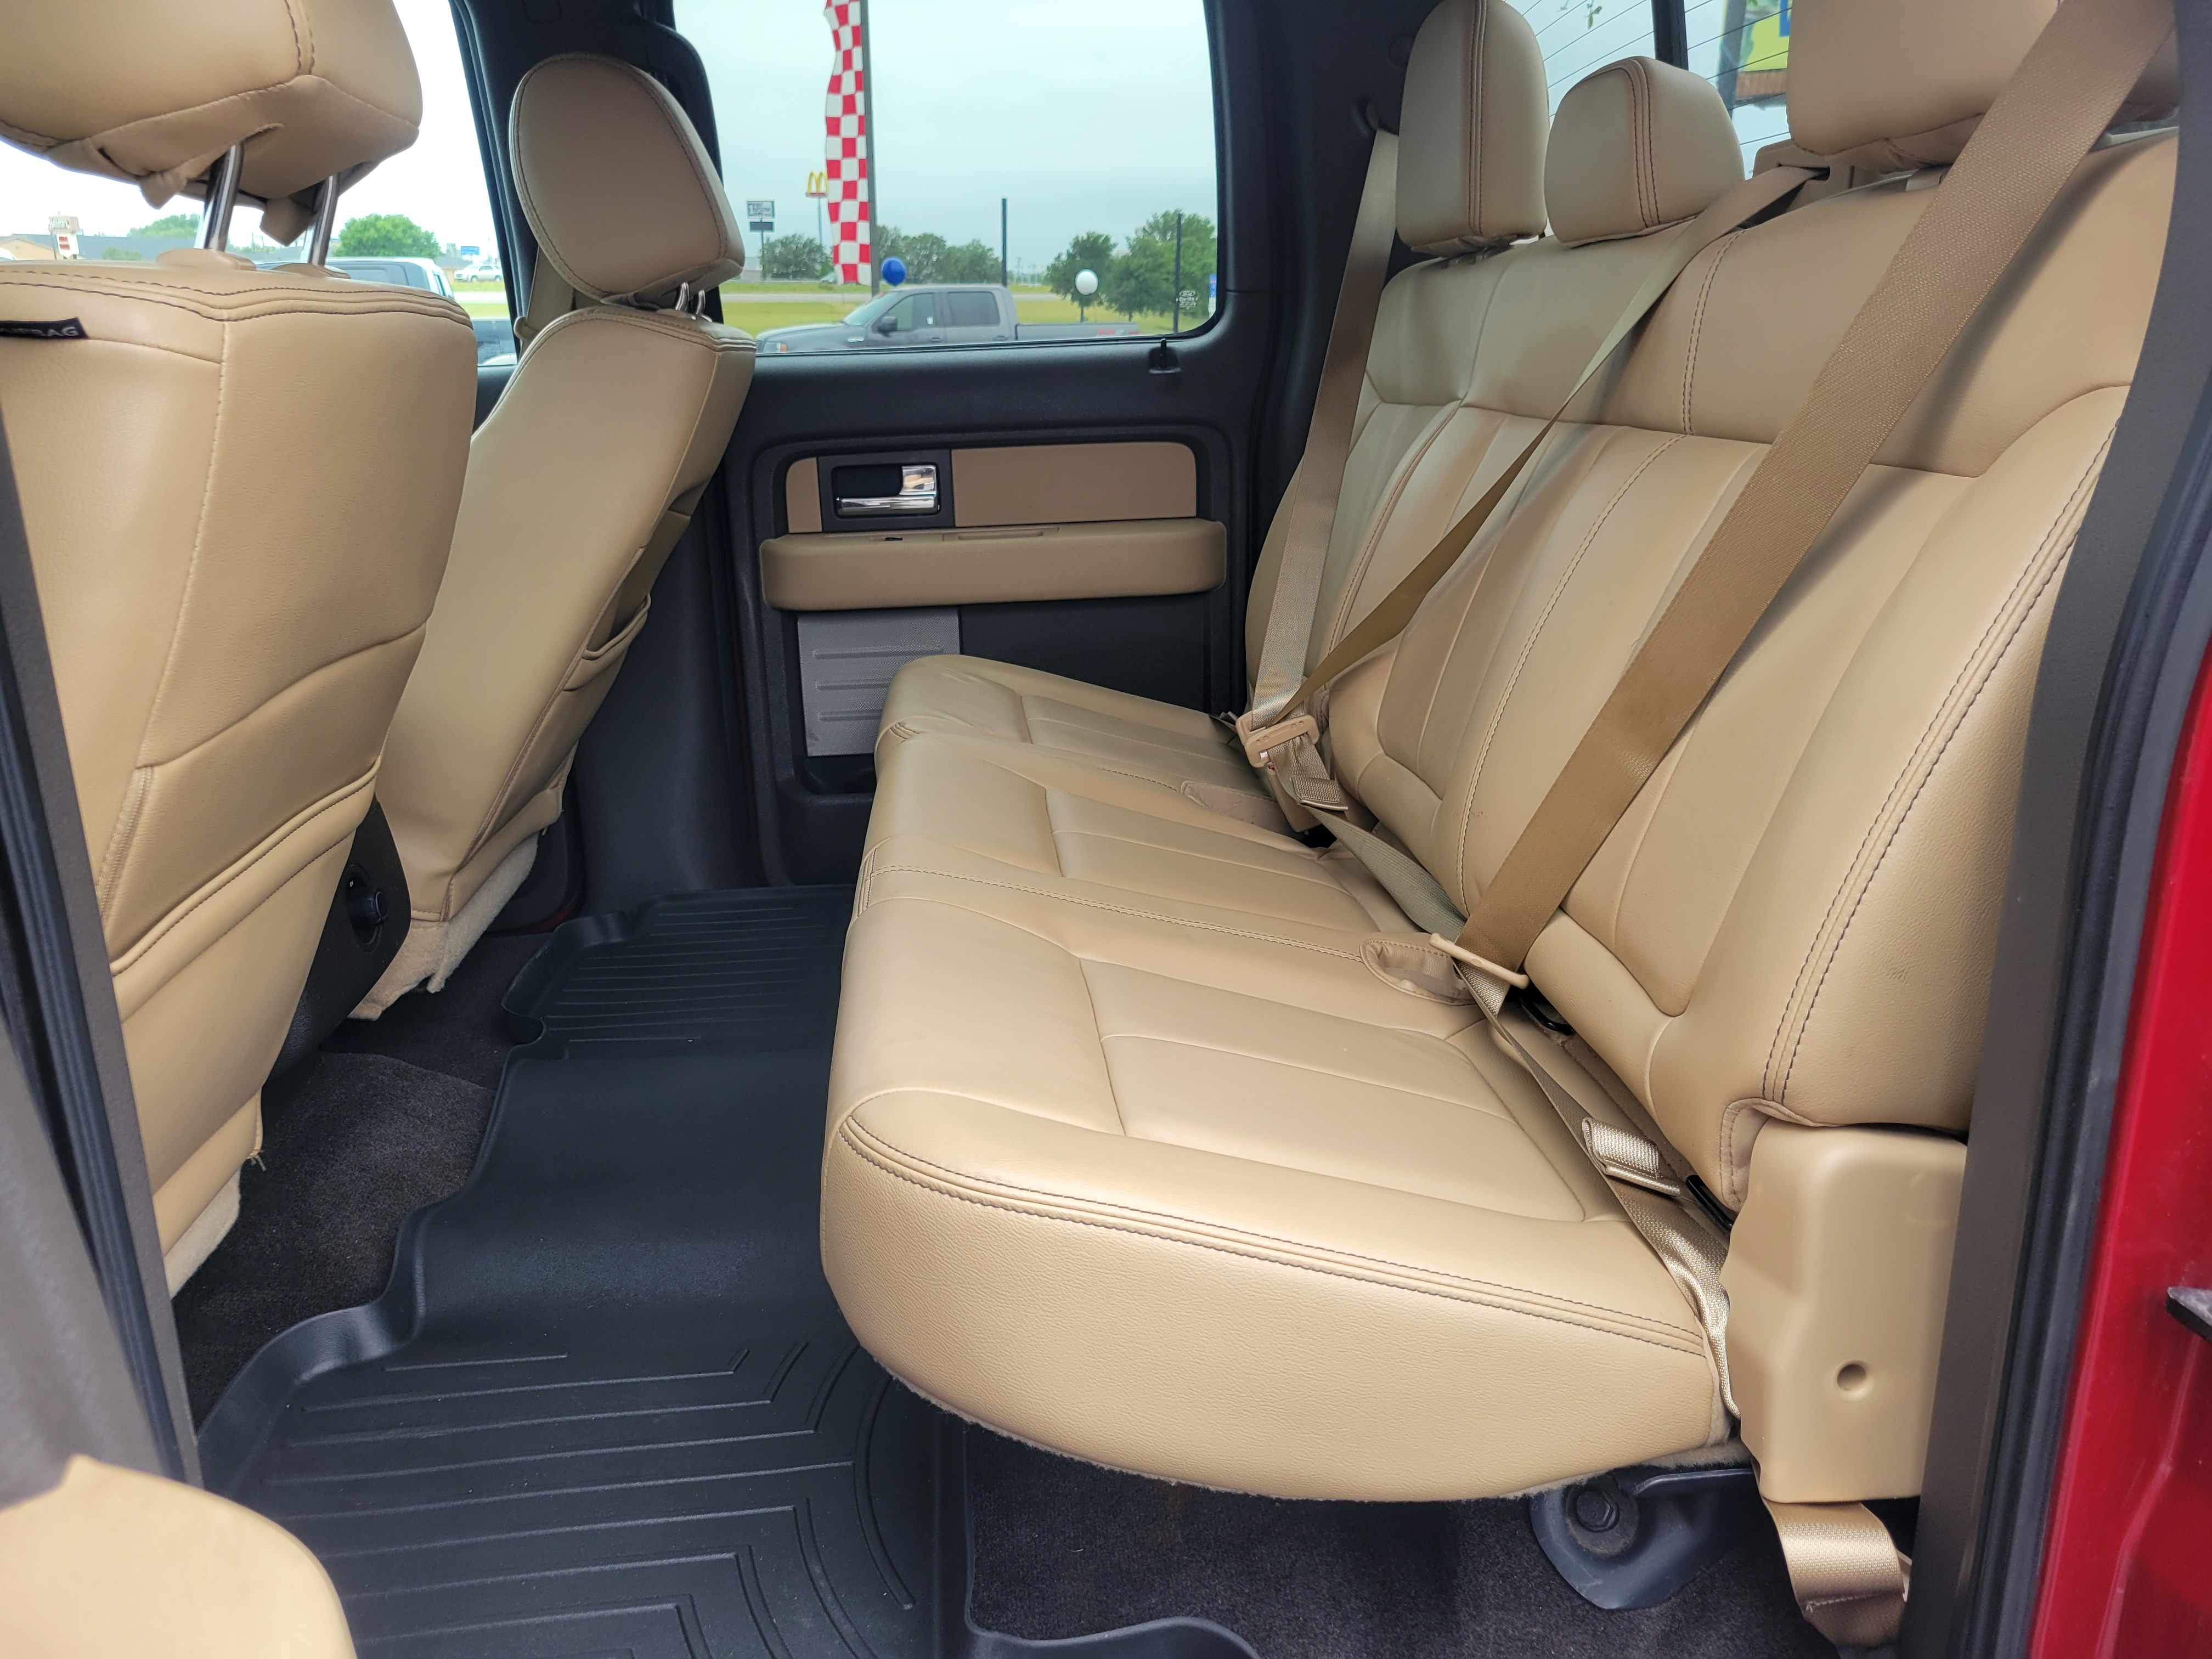 used vehicle - Truck FORD F-150 2014